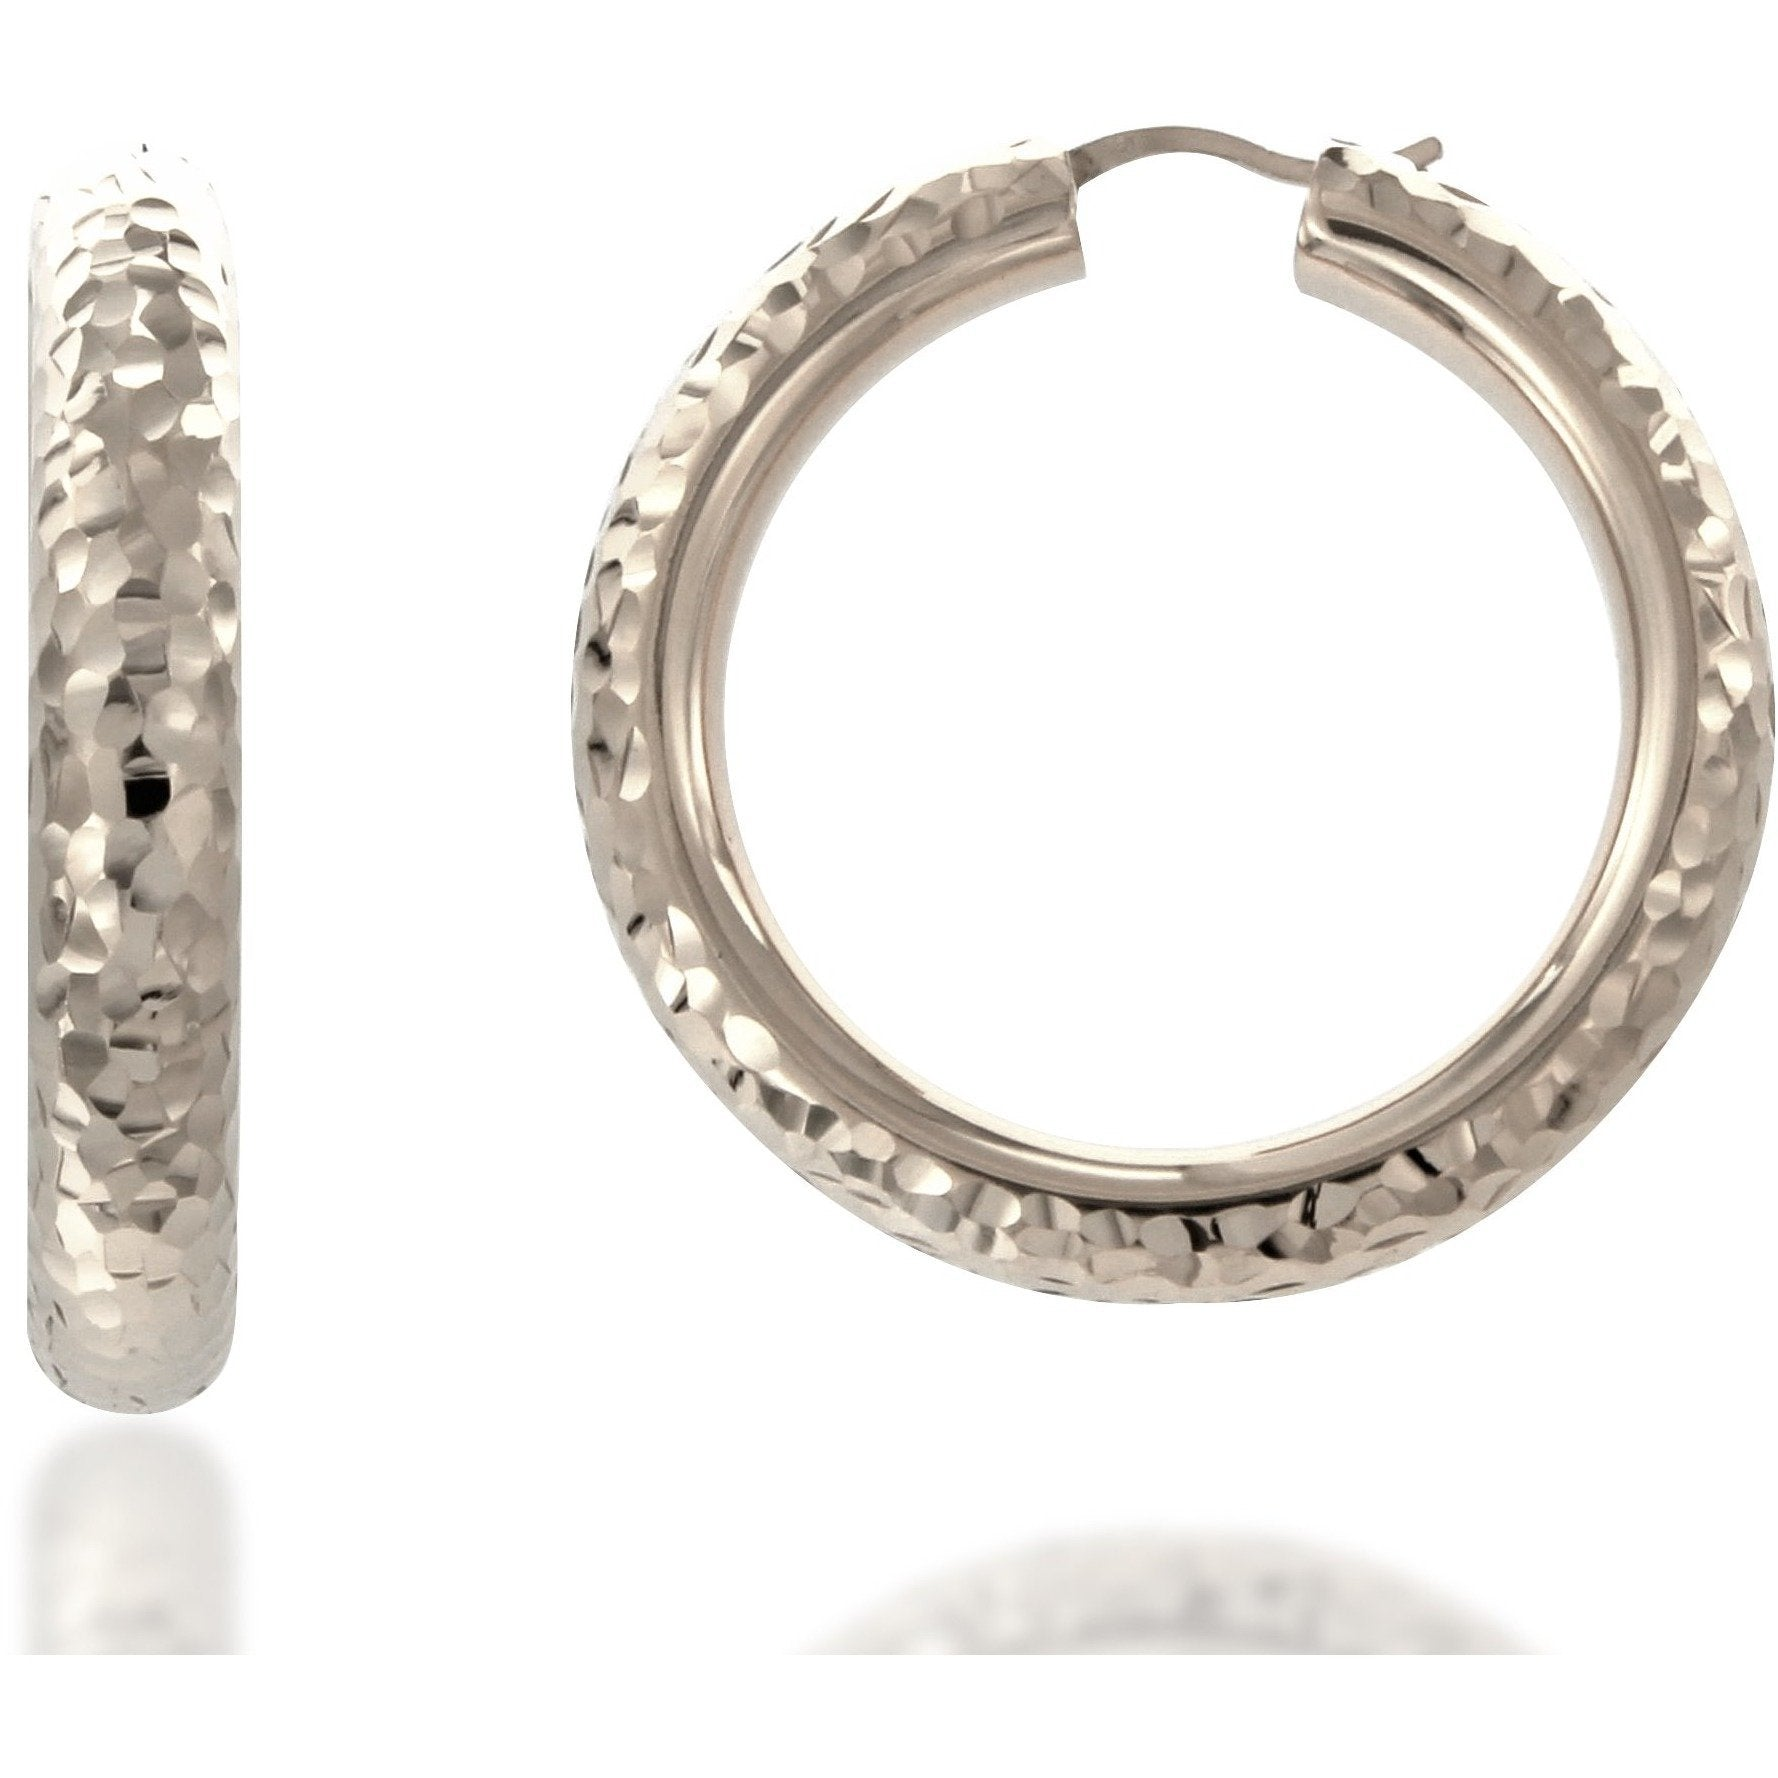 32a4238ae Load image into Gallery viewer, Rifa 4 cm sterling silver hoops - GALLERIA  ARMADORO ...